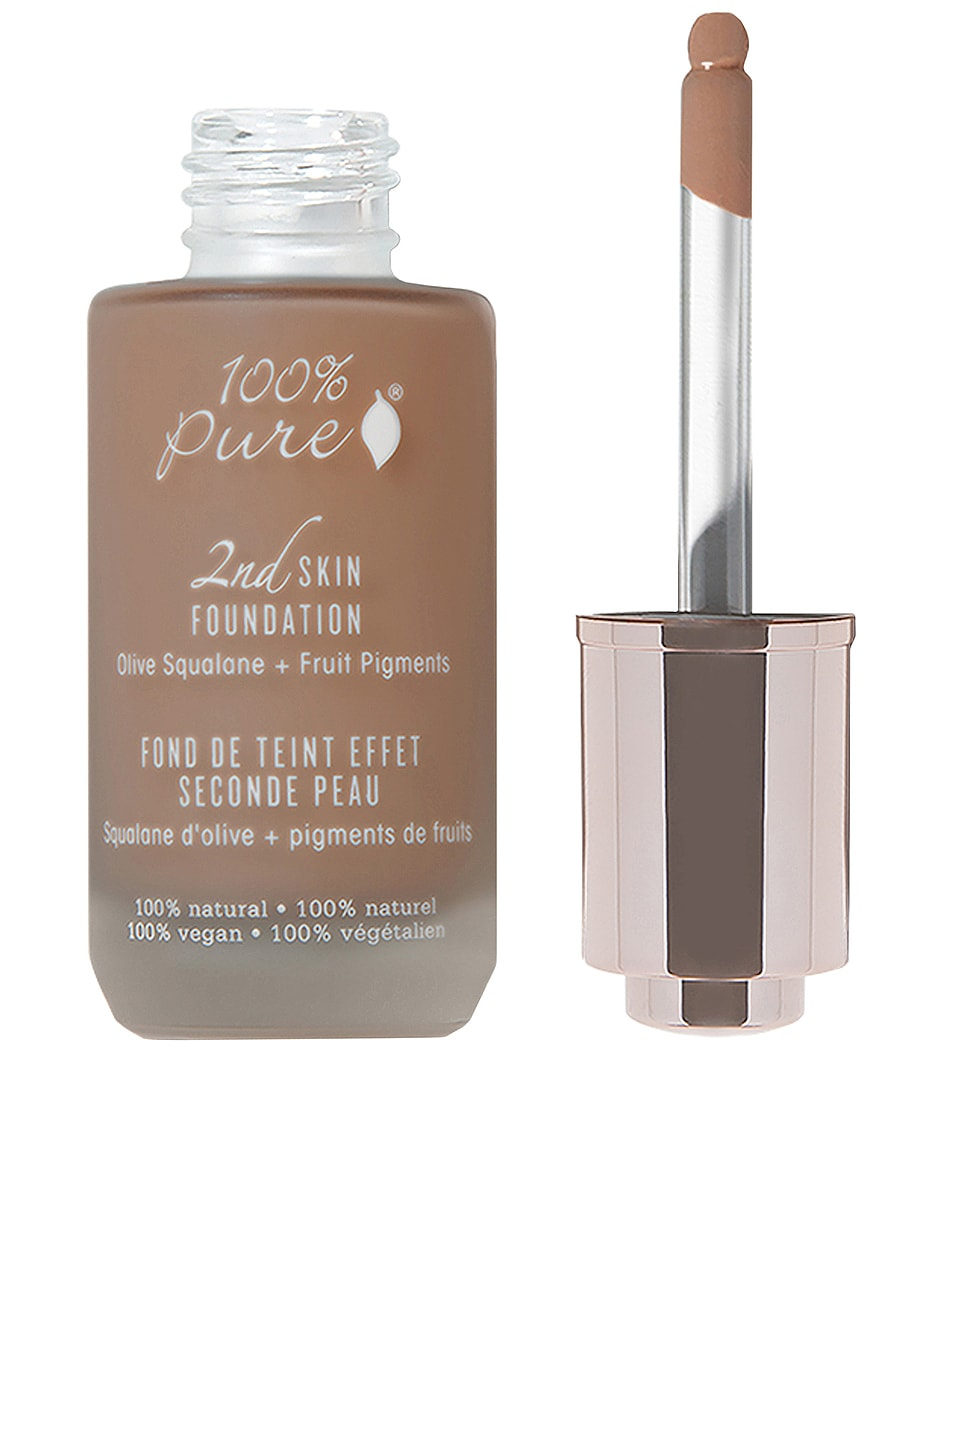 100% Pure 2nd Skin Foundation: Olive Squalene + Fruit Figments in Shade 7